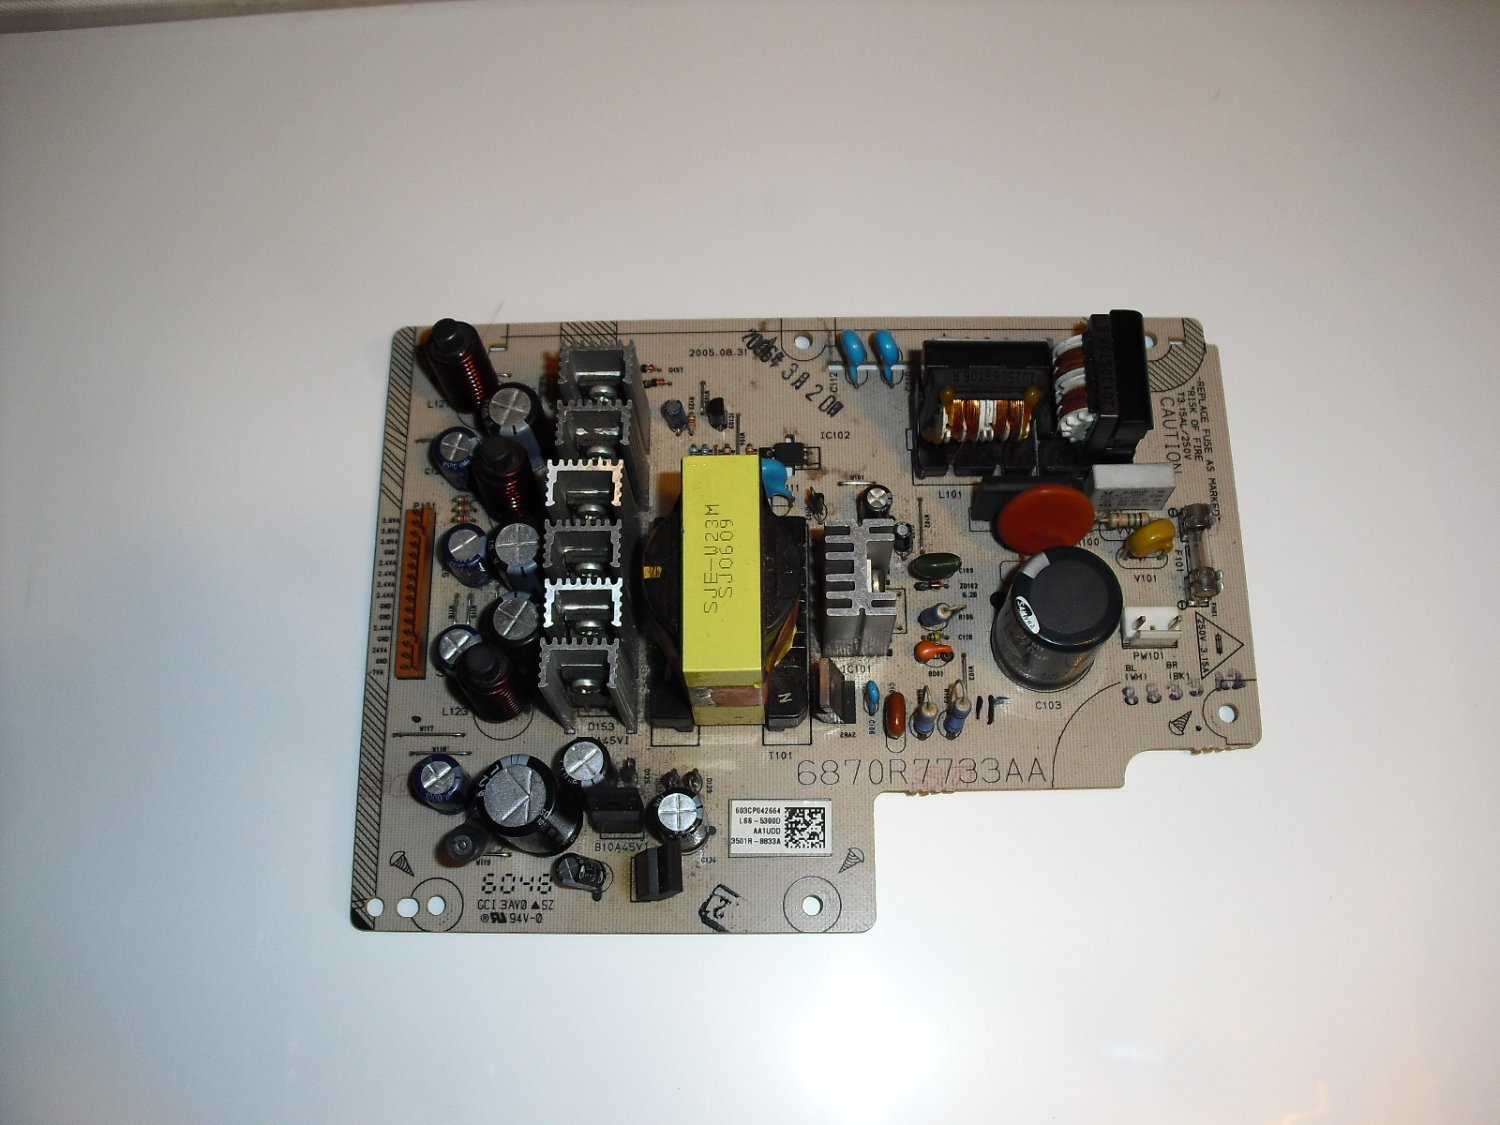 6870r7733aa  power  board  for  direct  tv  hr20